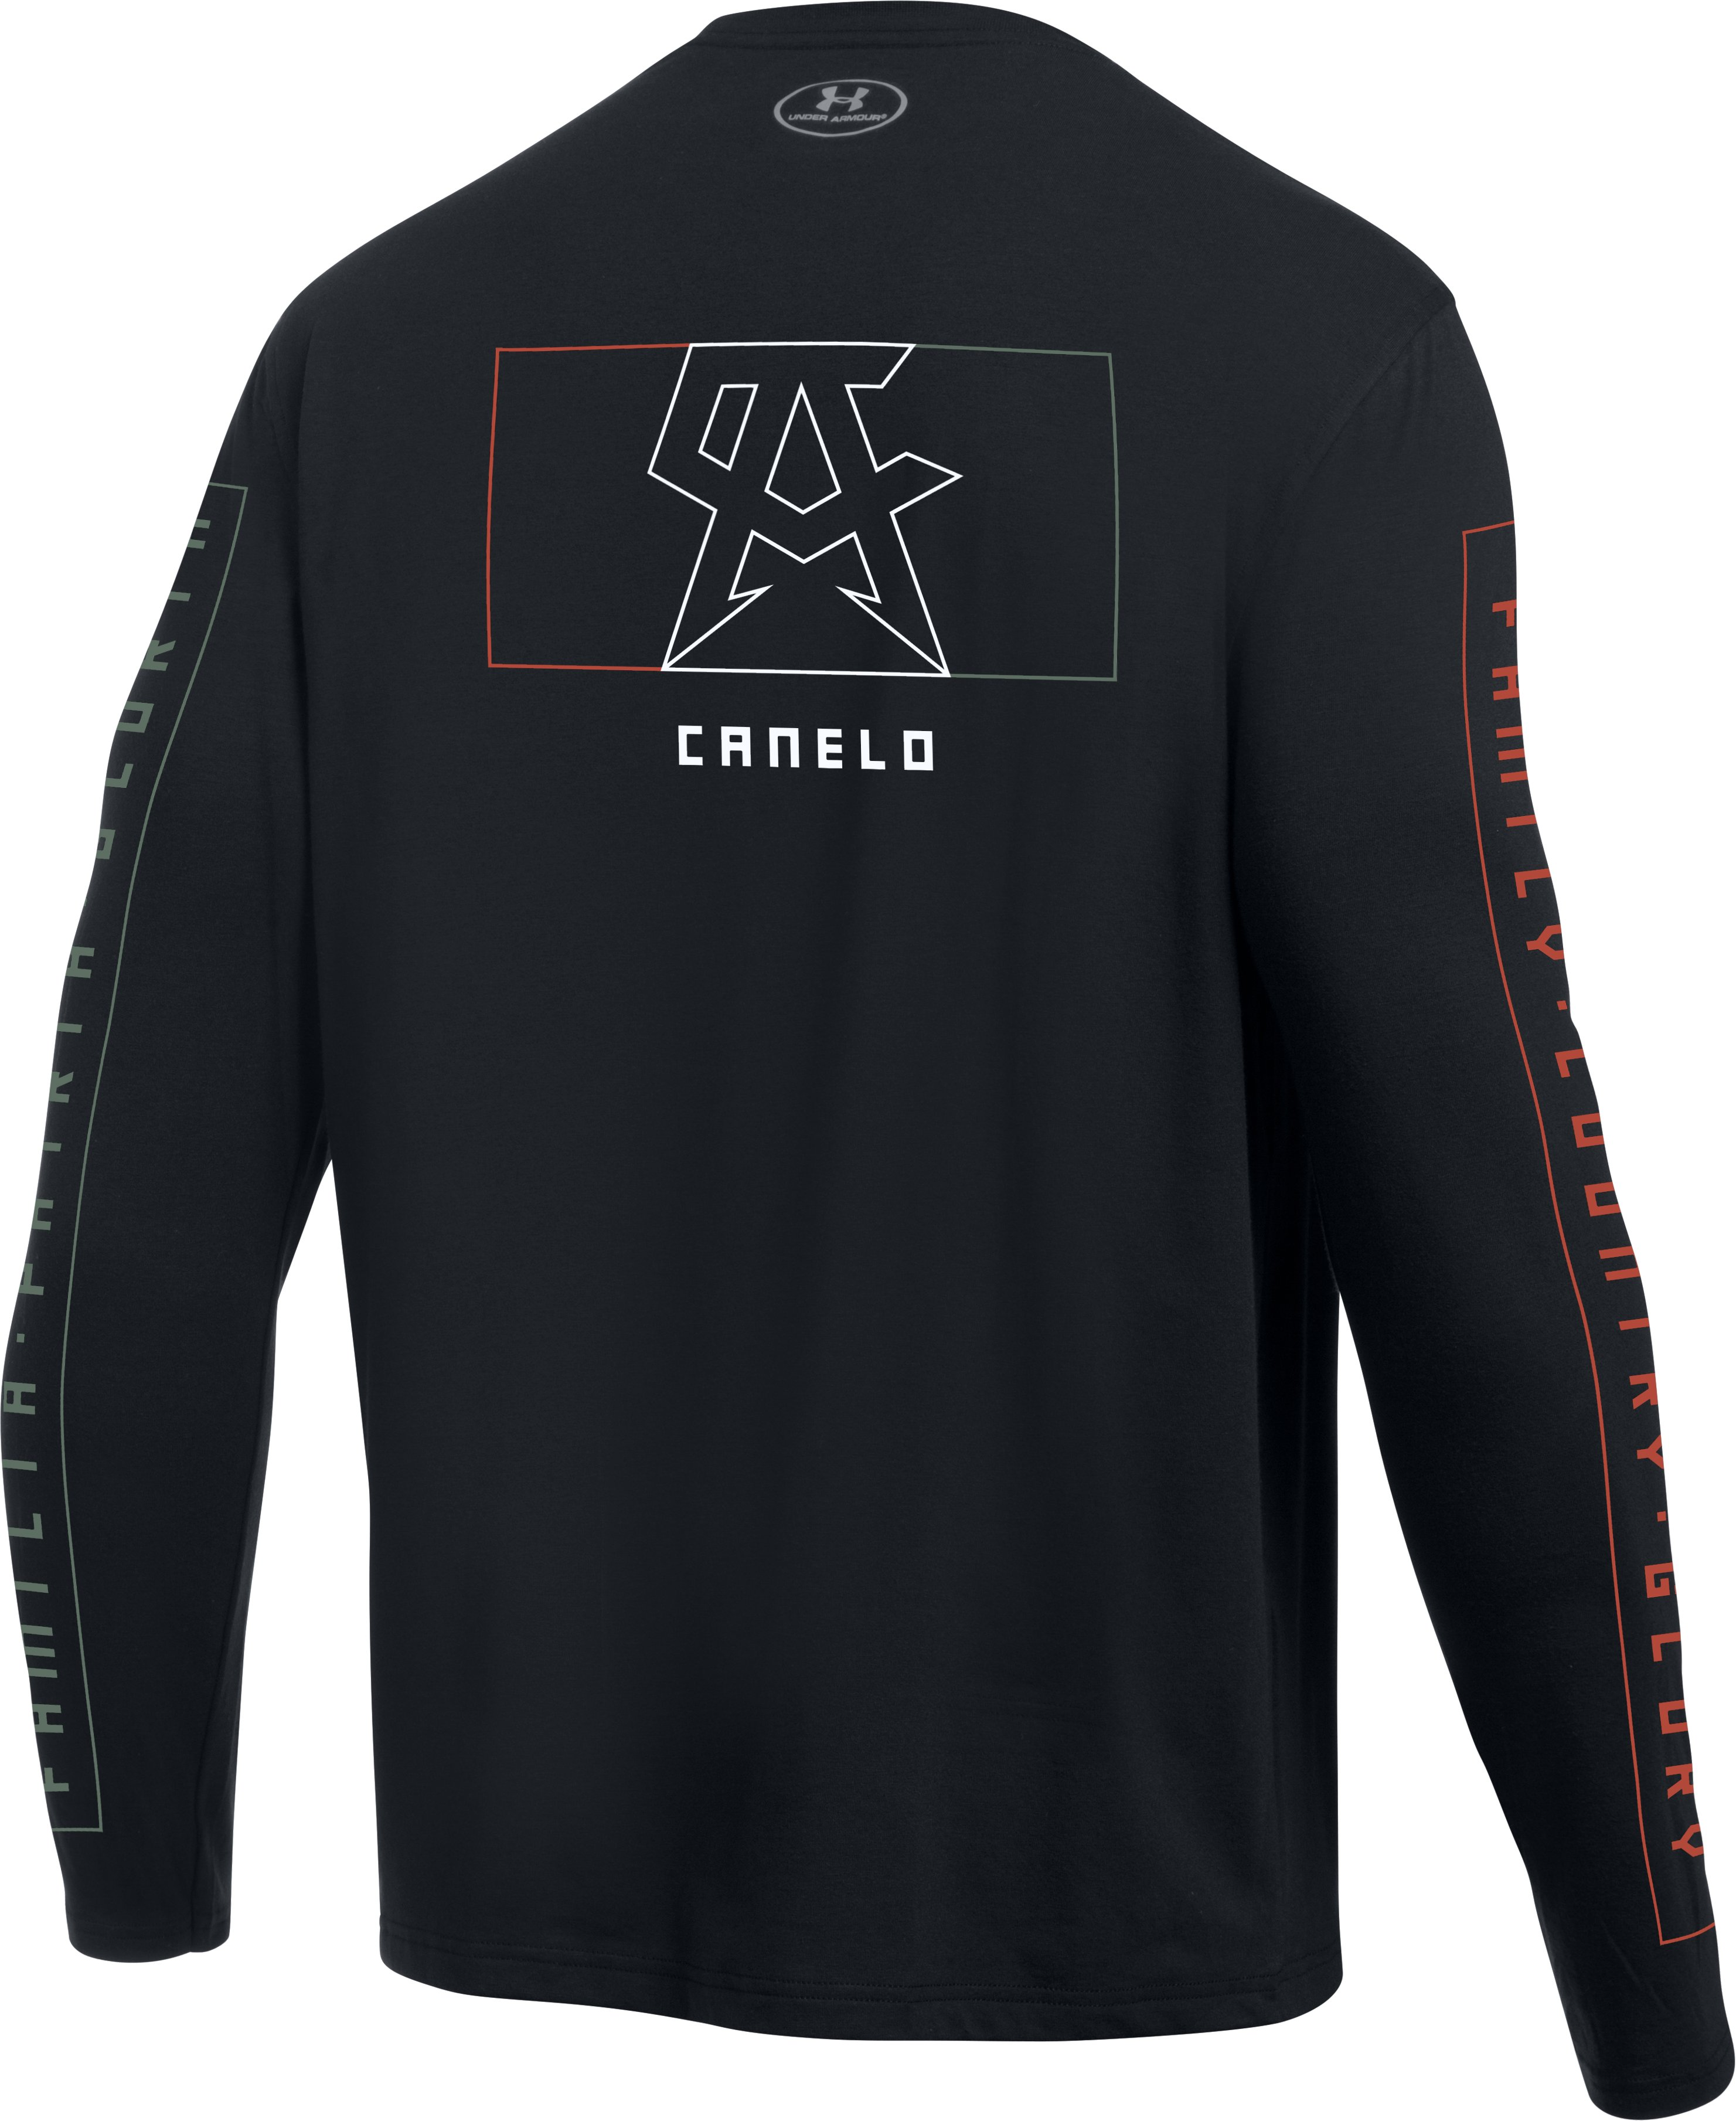 Men's UA Canelo Left Chest Long Sleeve T-Shirt, Black , undefined